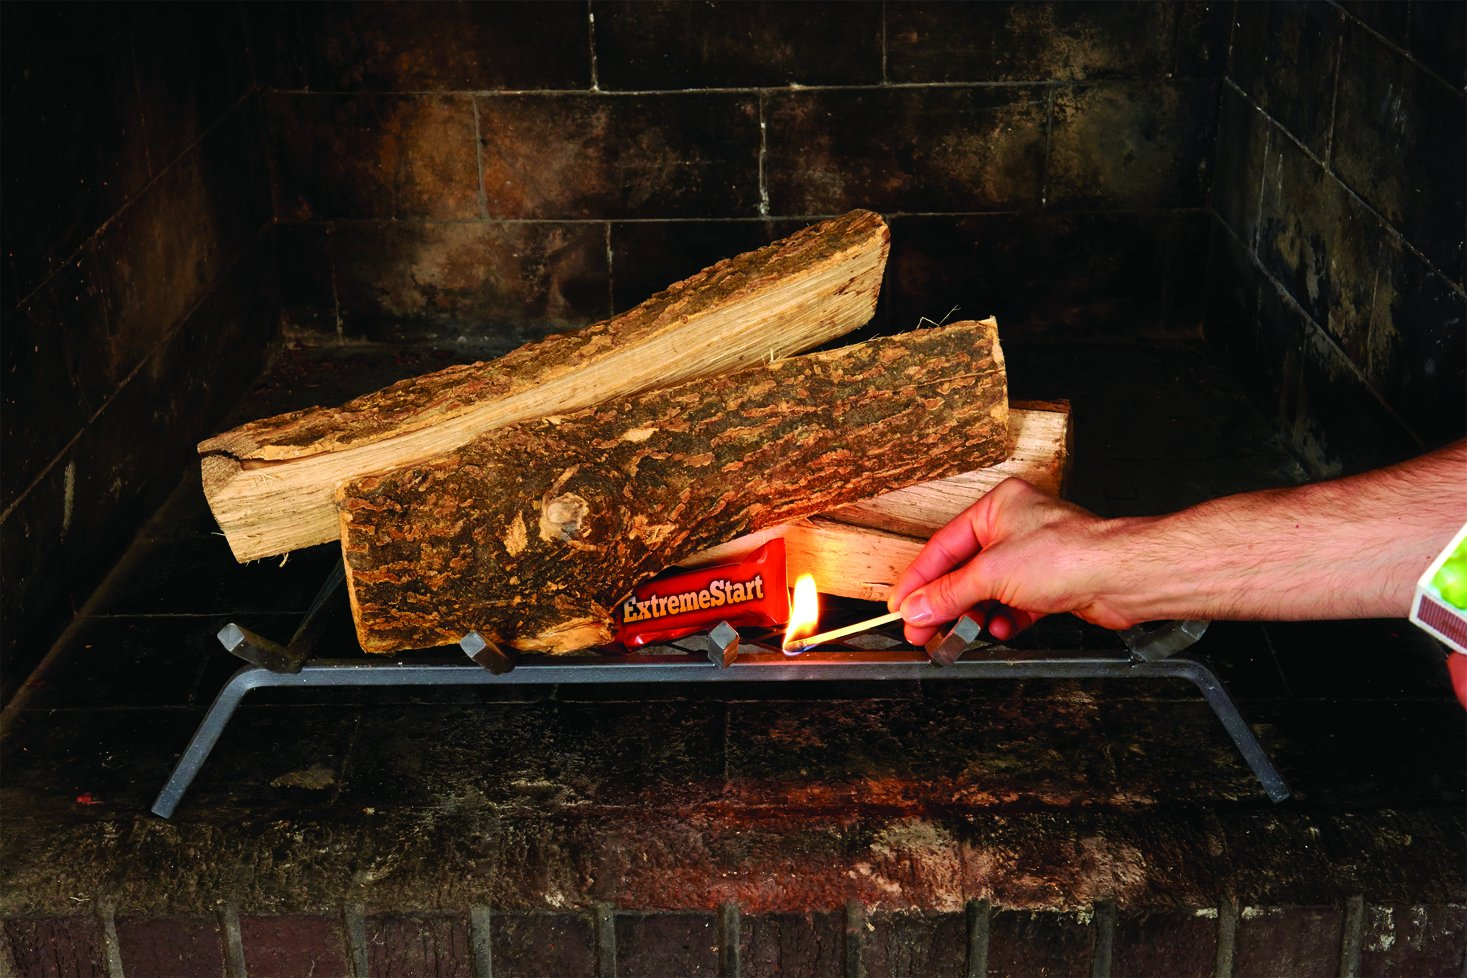 Pine Mountain ExtremeStart Wrapped Fire Starters 12 Starts Firestarter Wood Fire Log for Campfire//Fireplace//Wood Stove Fire Pit Indoor/&Outdoor Use Jarden Home Brands 4152501032